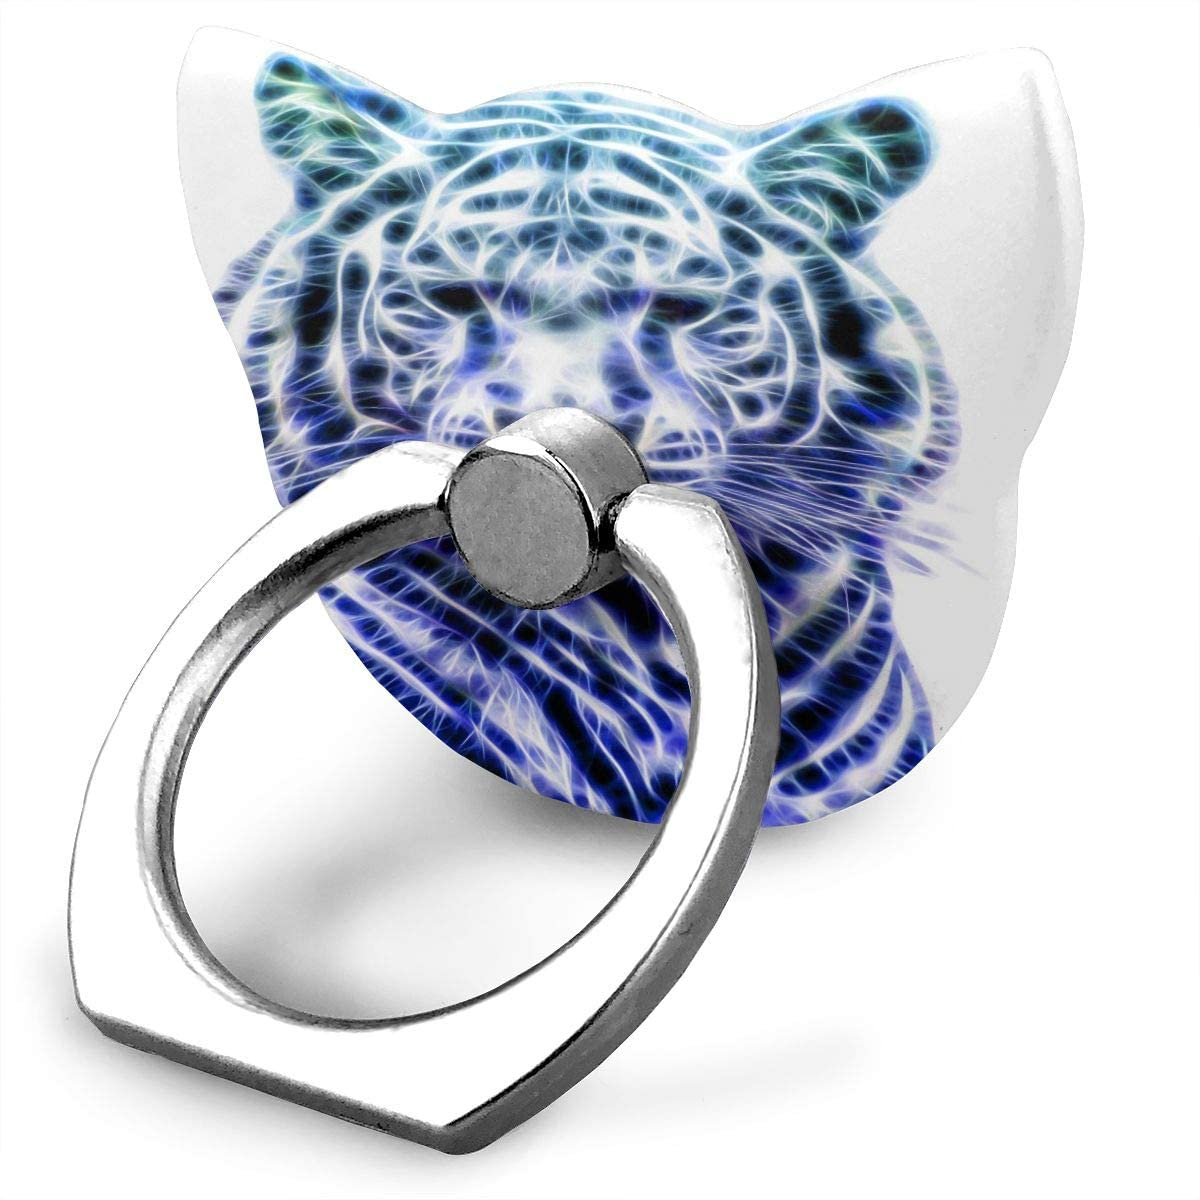 Cat Cell Phone Ring Holder, Ring Phone Holder White Bengal Tiger Illustration Cat Ring Holder for Cell Phone, Phone Ring Stand Finger Kickstand 360° Rotation Compatible with All Smartphones